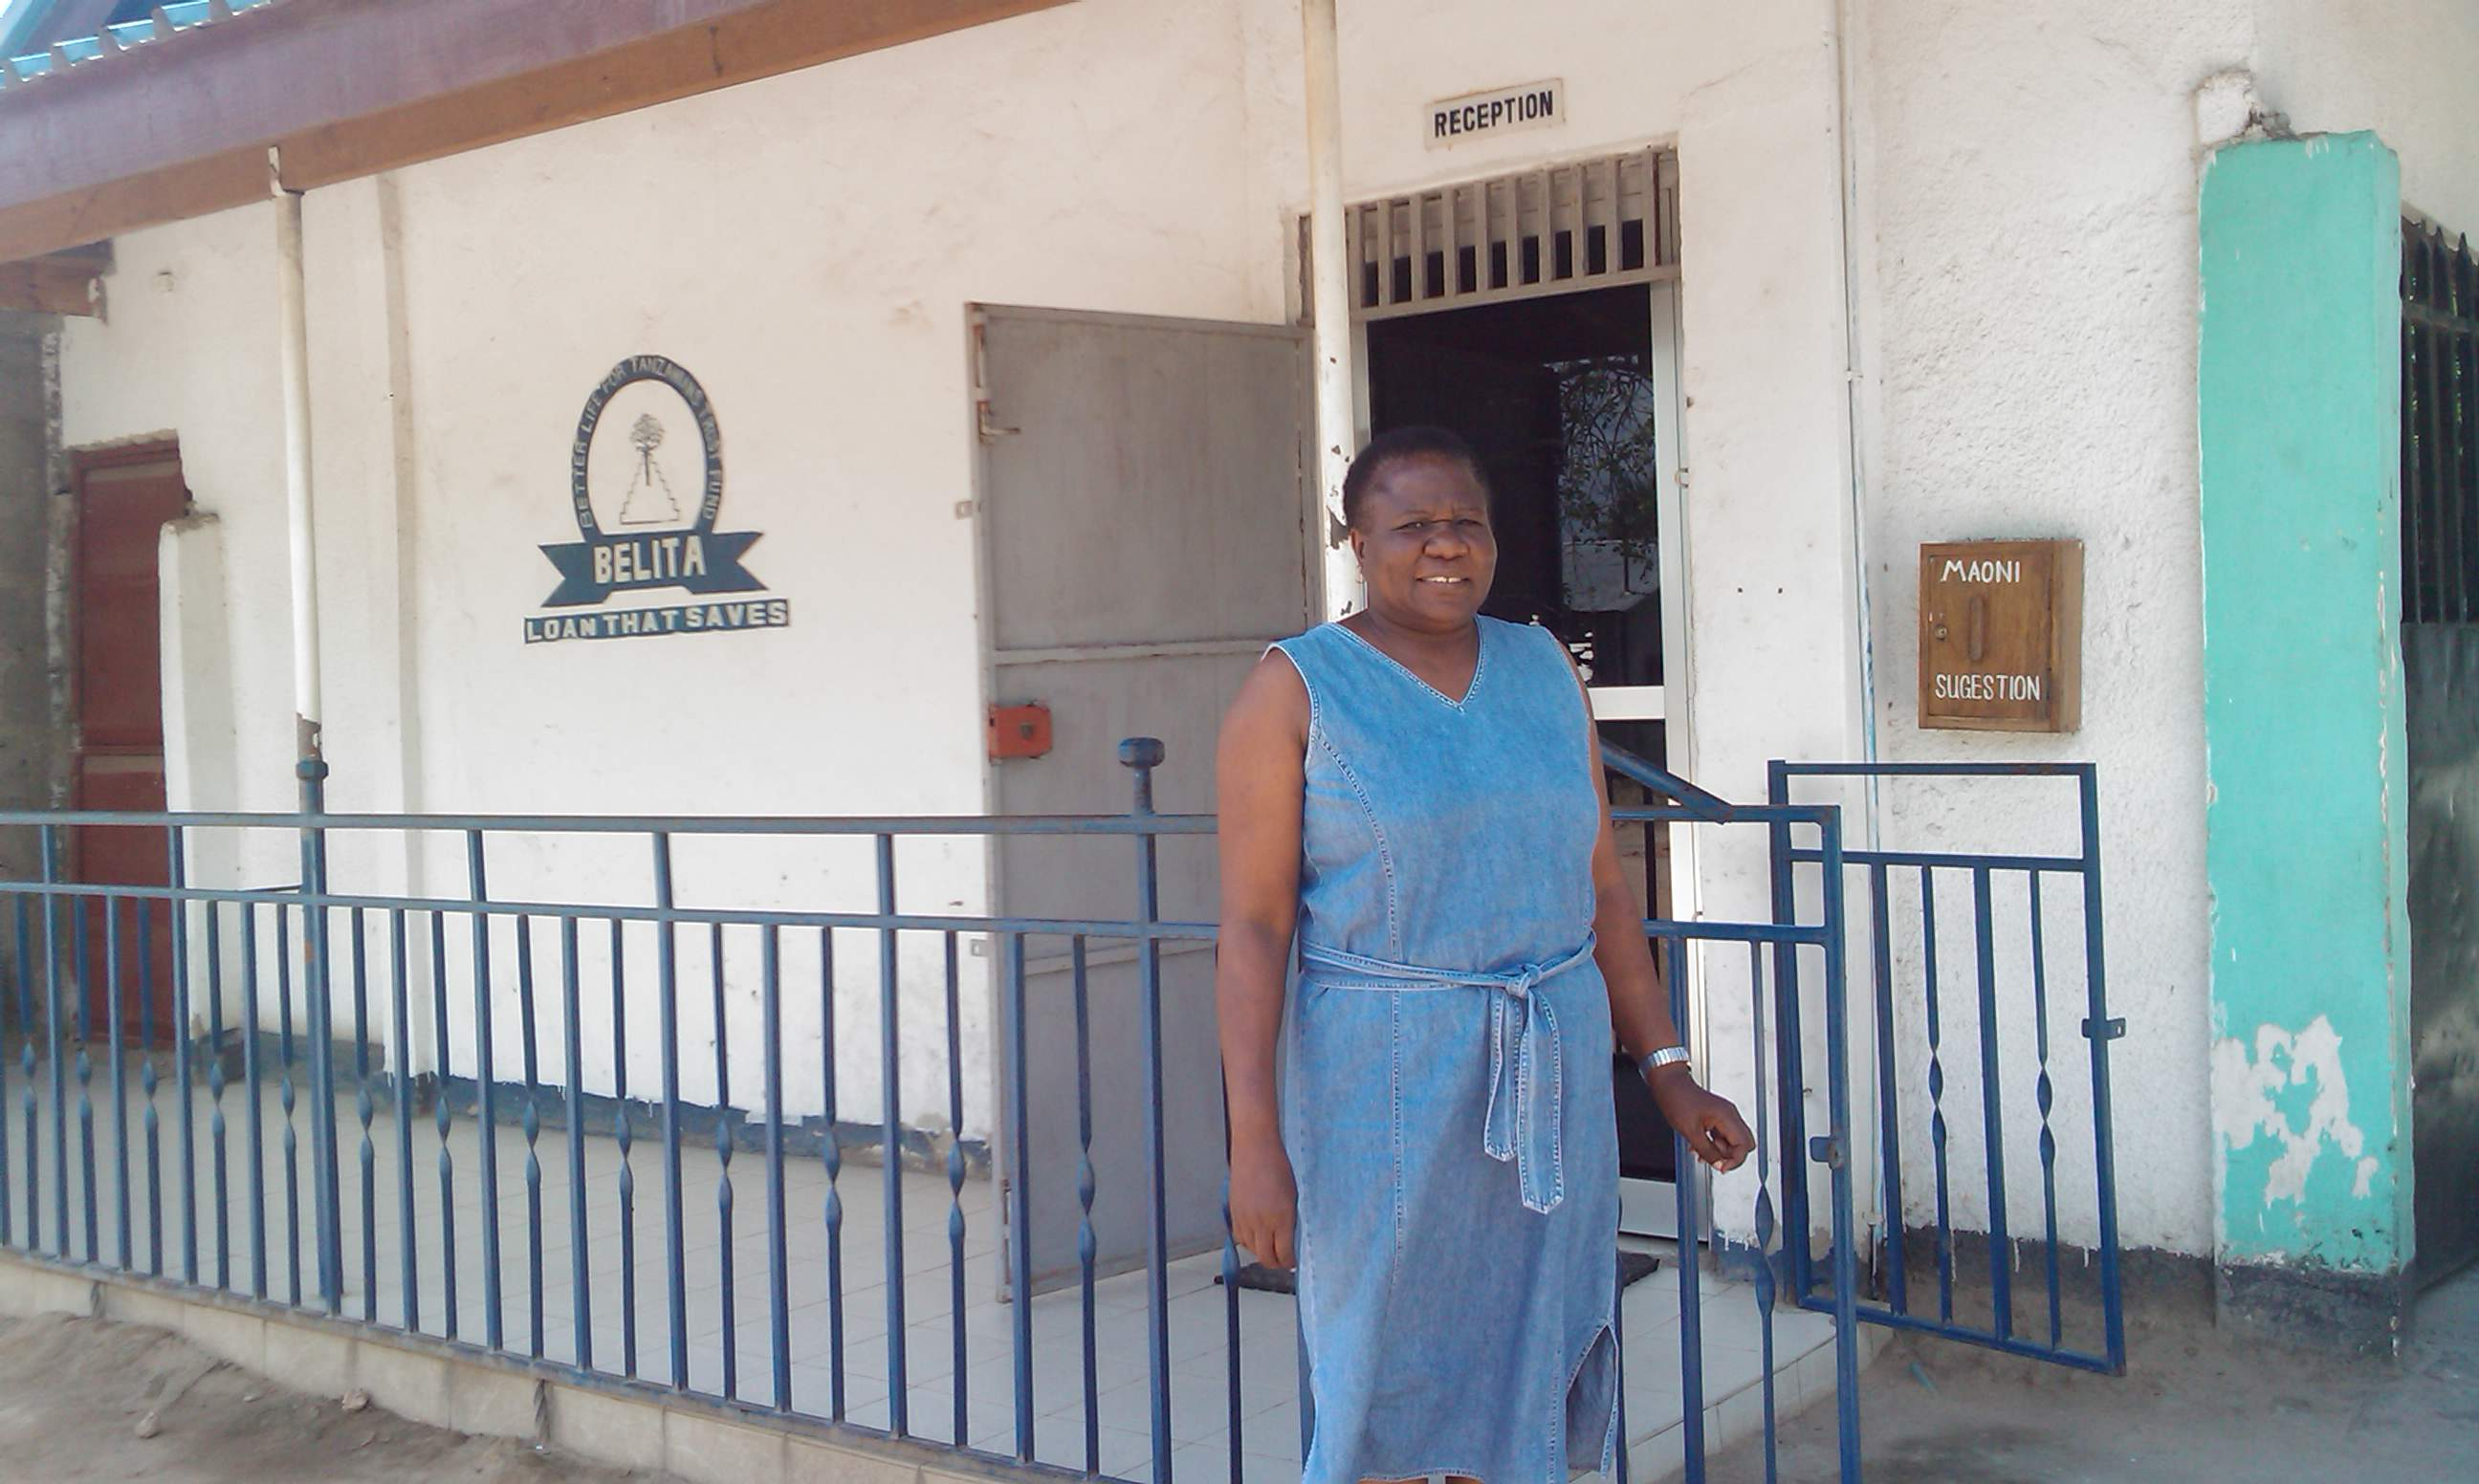 Helena, the BELITA founder, standing in front of the servant's quarter's old BELITA office.